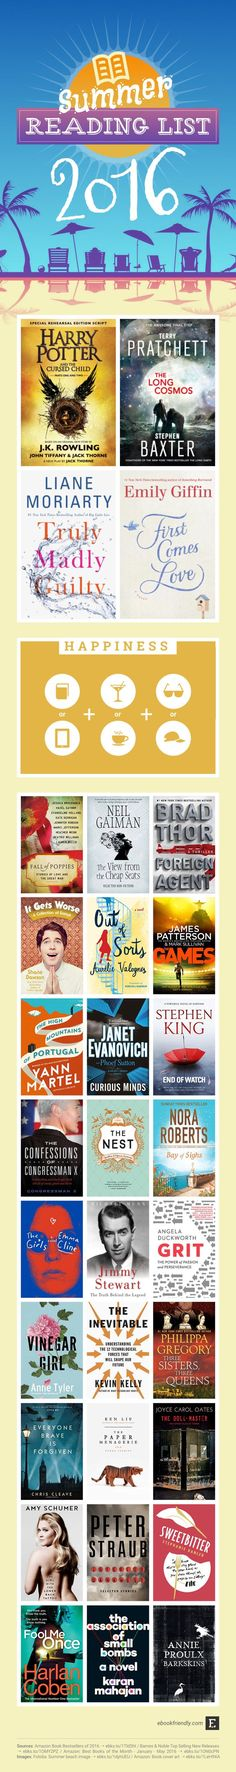 Here is a #reading list for summer 2016 #infographic